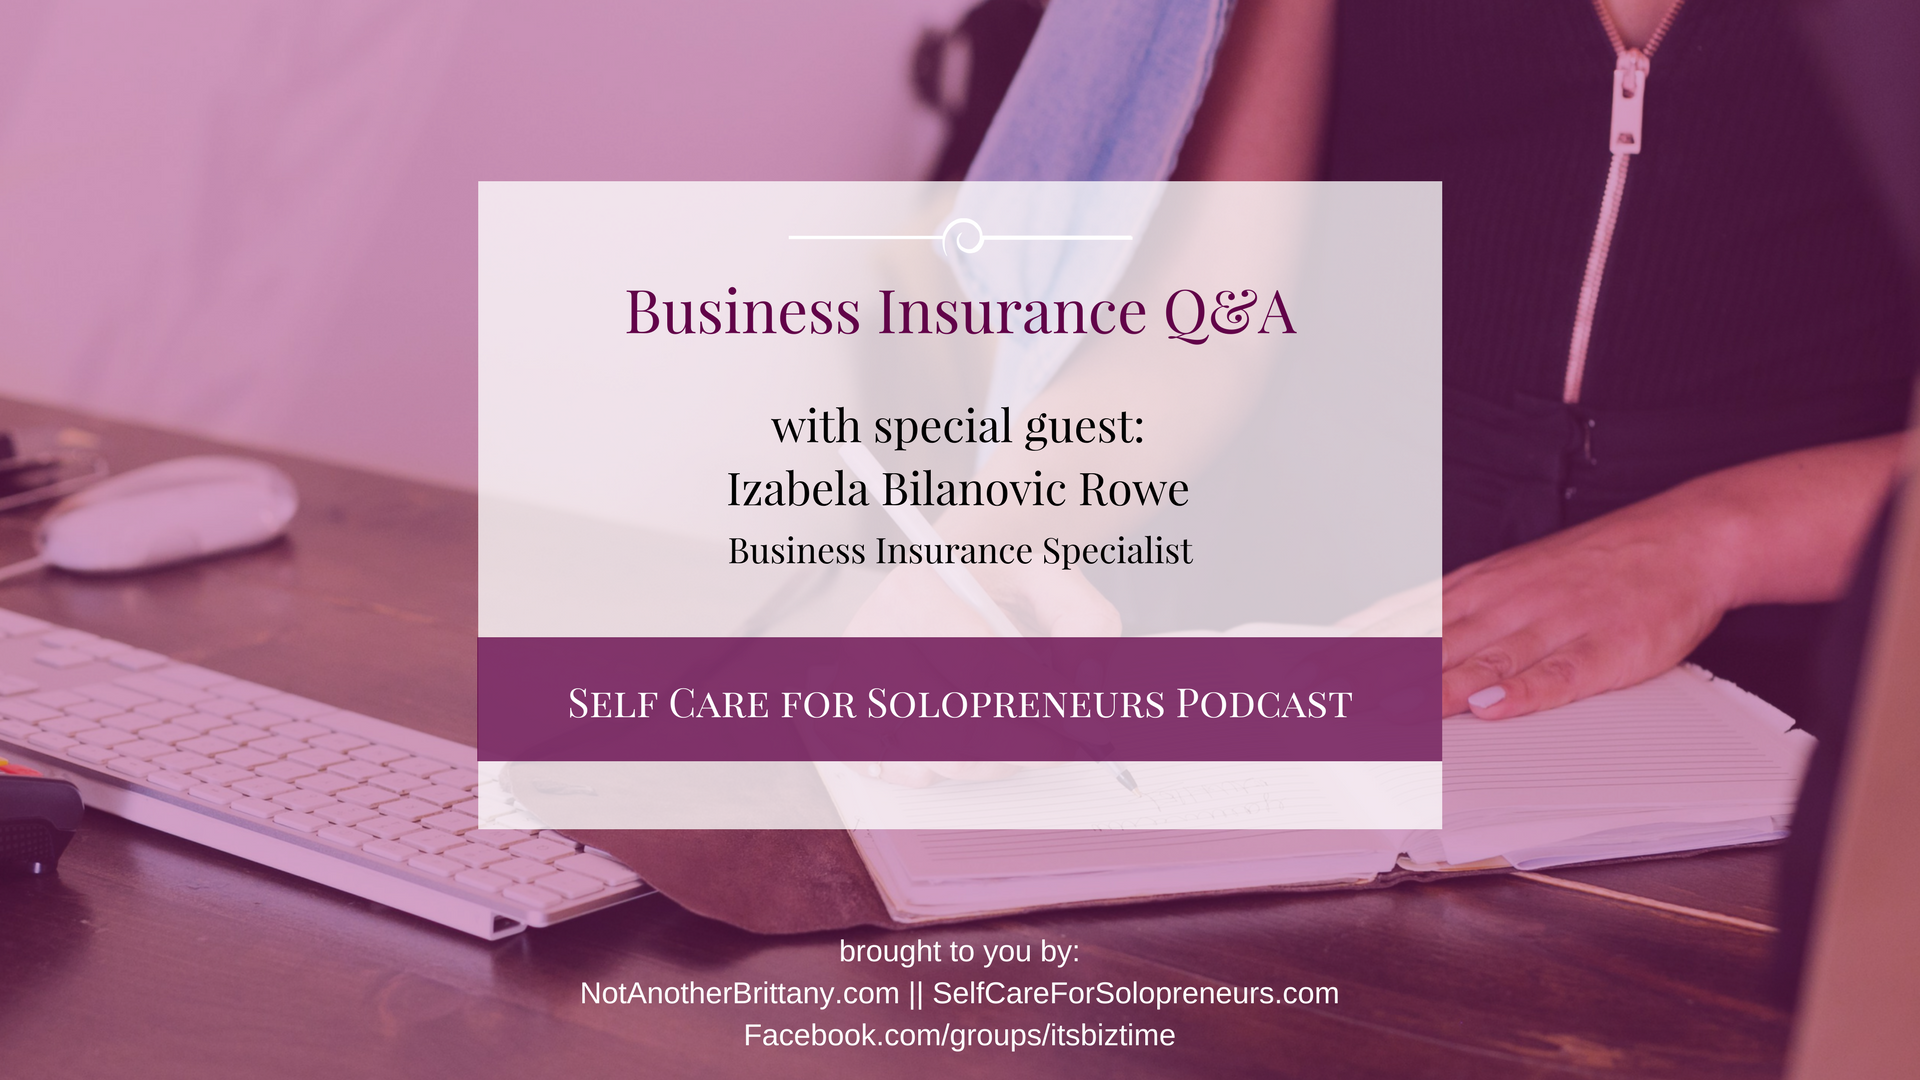 Podcast: Business Insurance Q&A